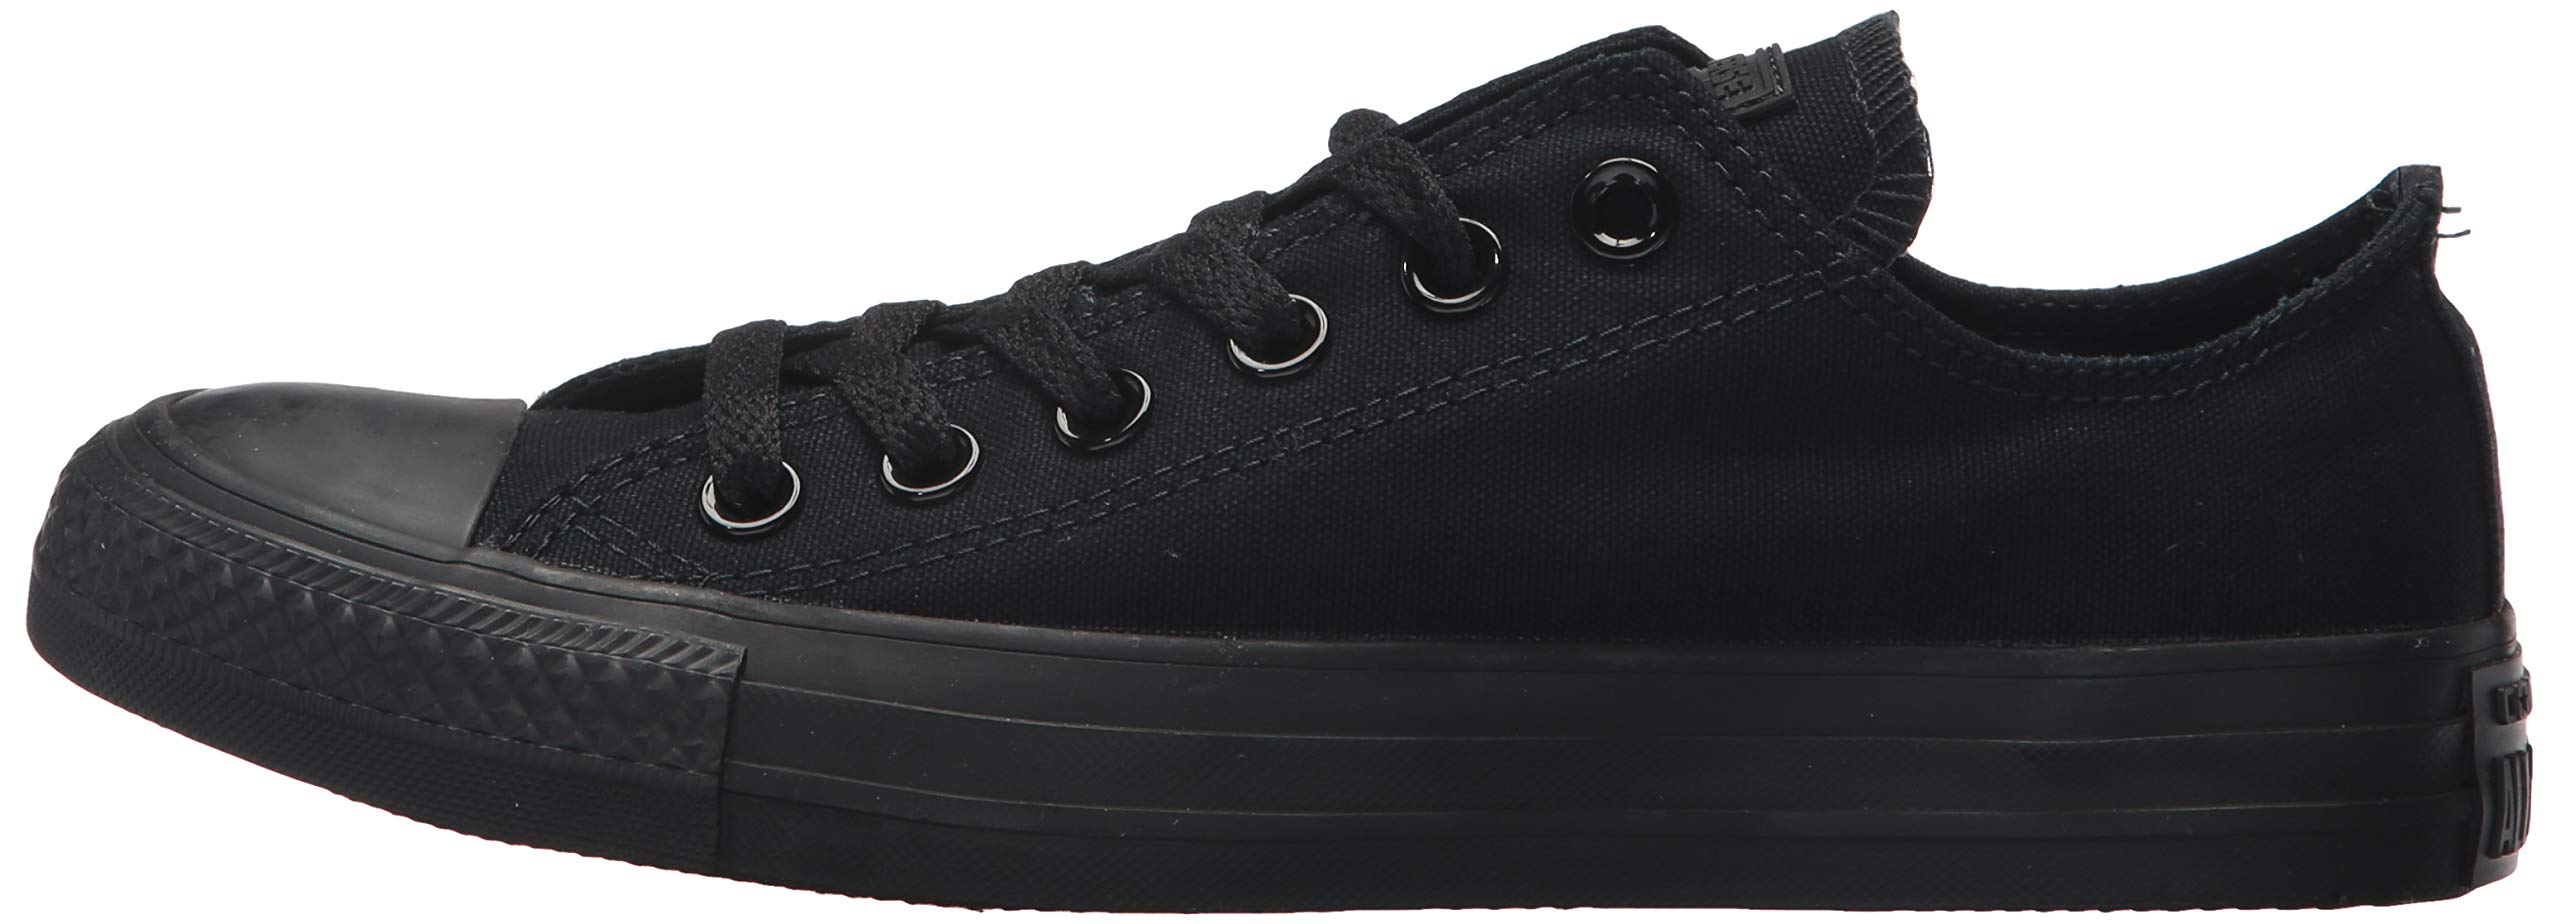 Converse Unisex Chuck Taylor All Star Low Top Black Monochrome Sneakers - 9 D(M) US by Converse (Image #6)